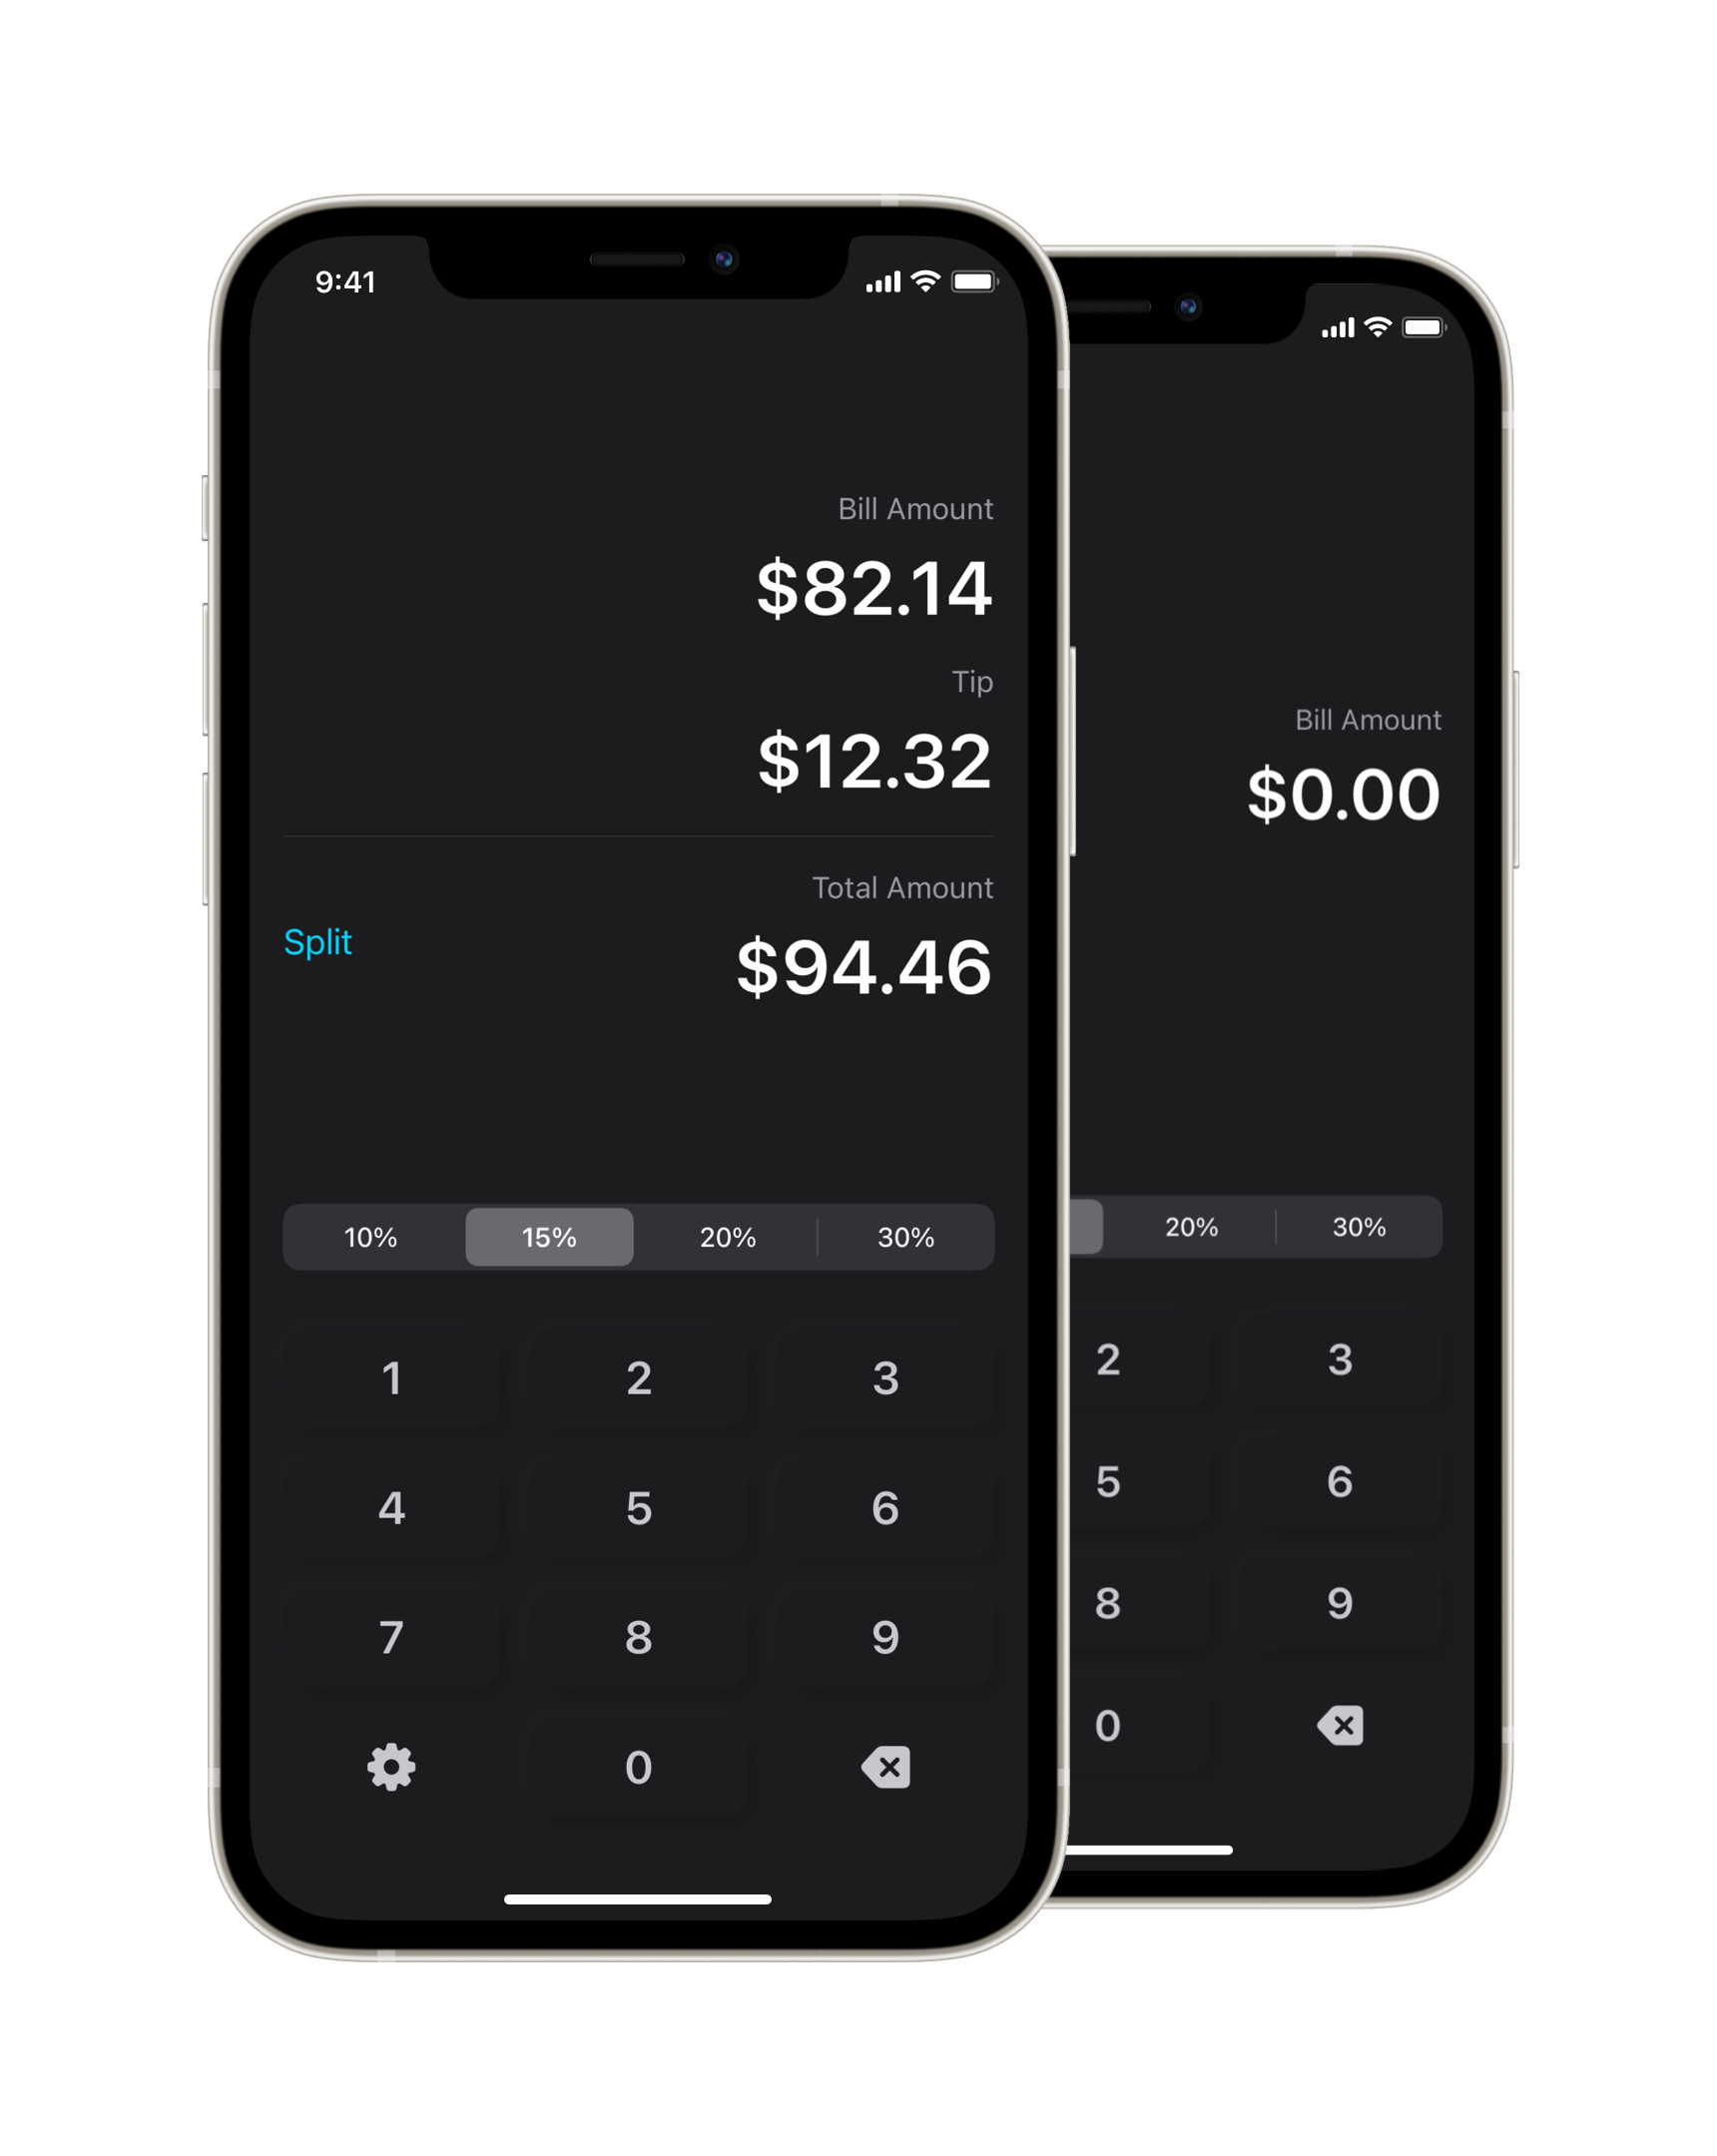 Tip App - Calculate the Tip